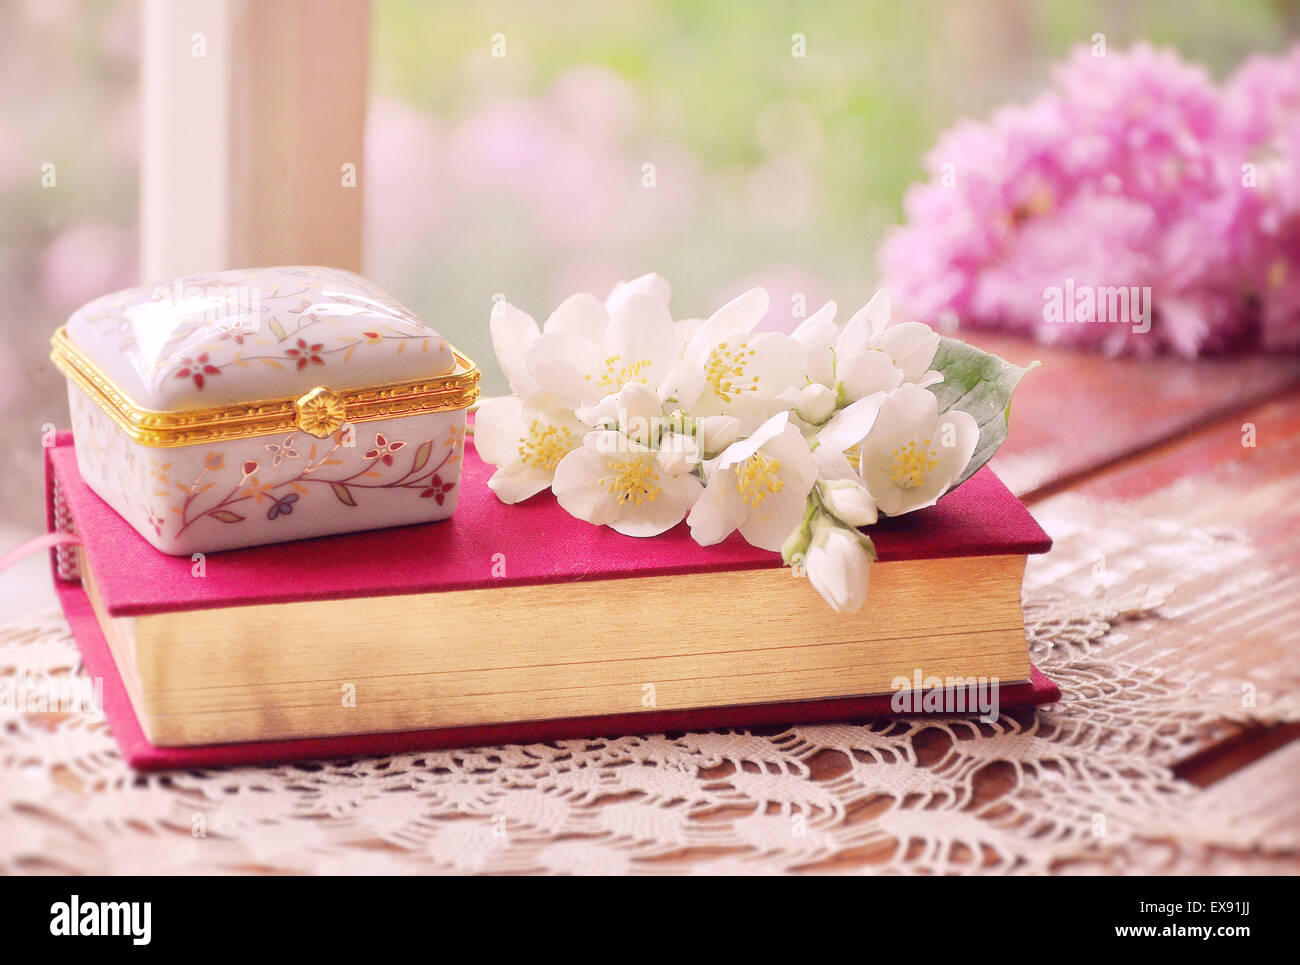 A Girls Dream A Pink Gold Jewelry Box Books And Flowers Stock